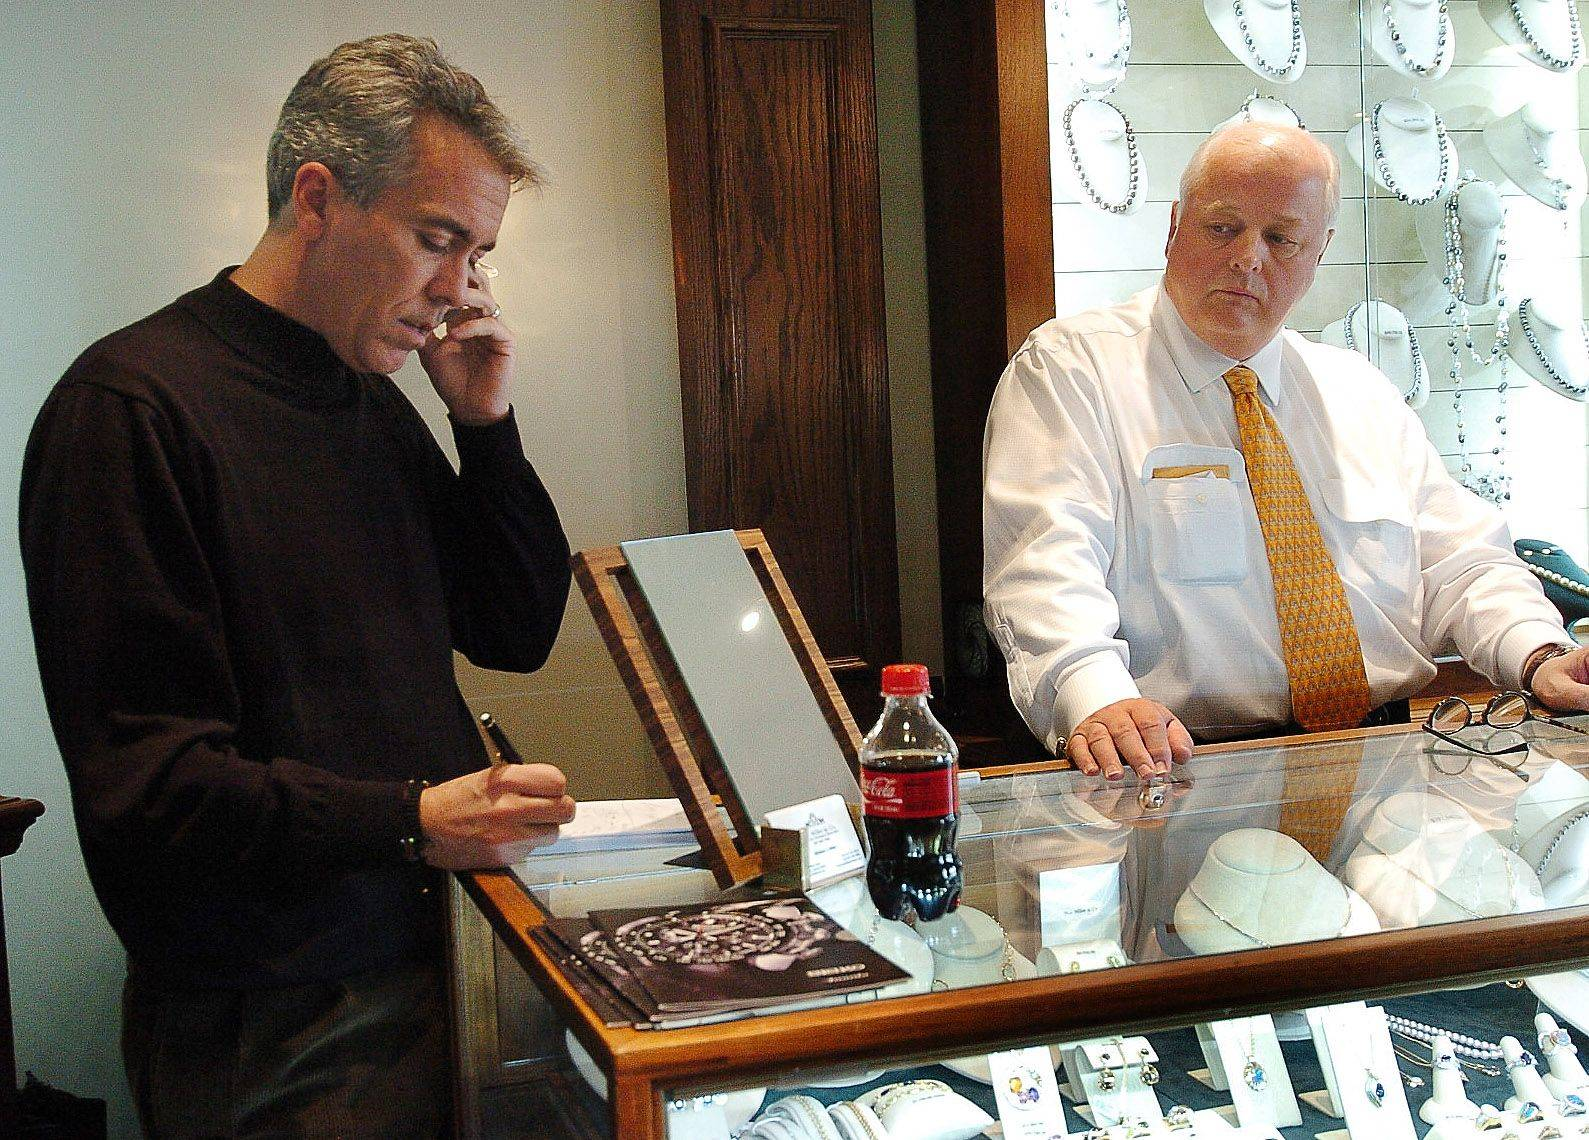 8th District candidate Joe Walsh works out of a makeshift office provided by M.J. Miller & Co. in Barrington on the day after the election. Here, Walsh is pictured with business owner Michael J. Miller.